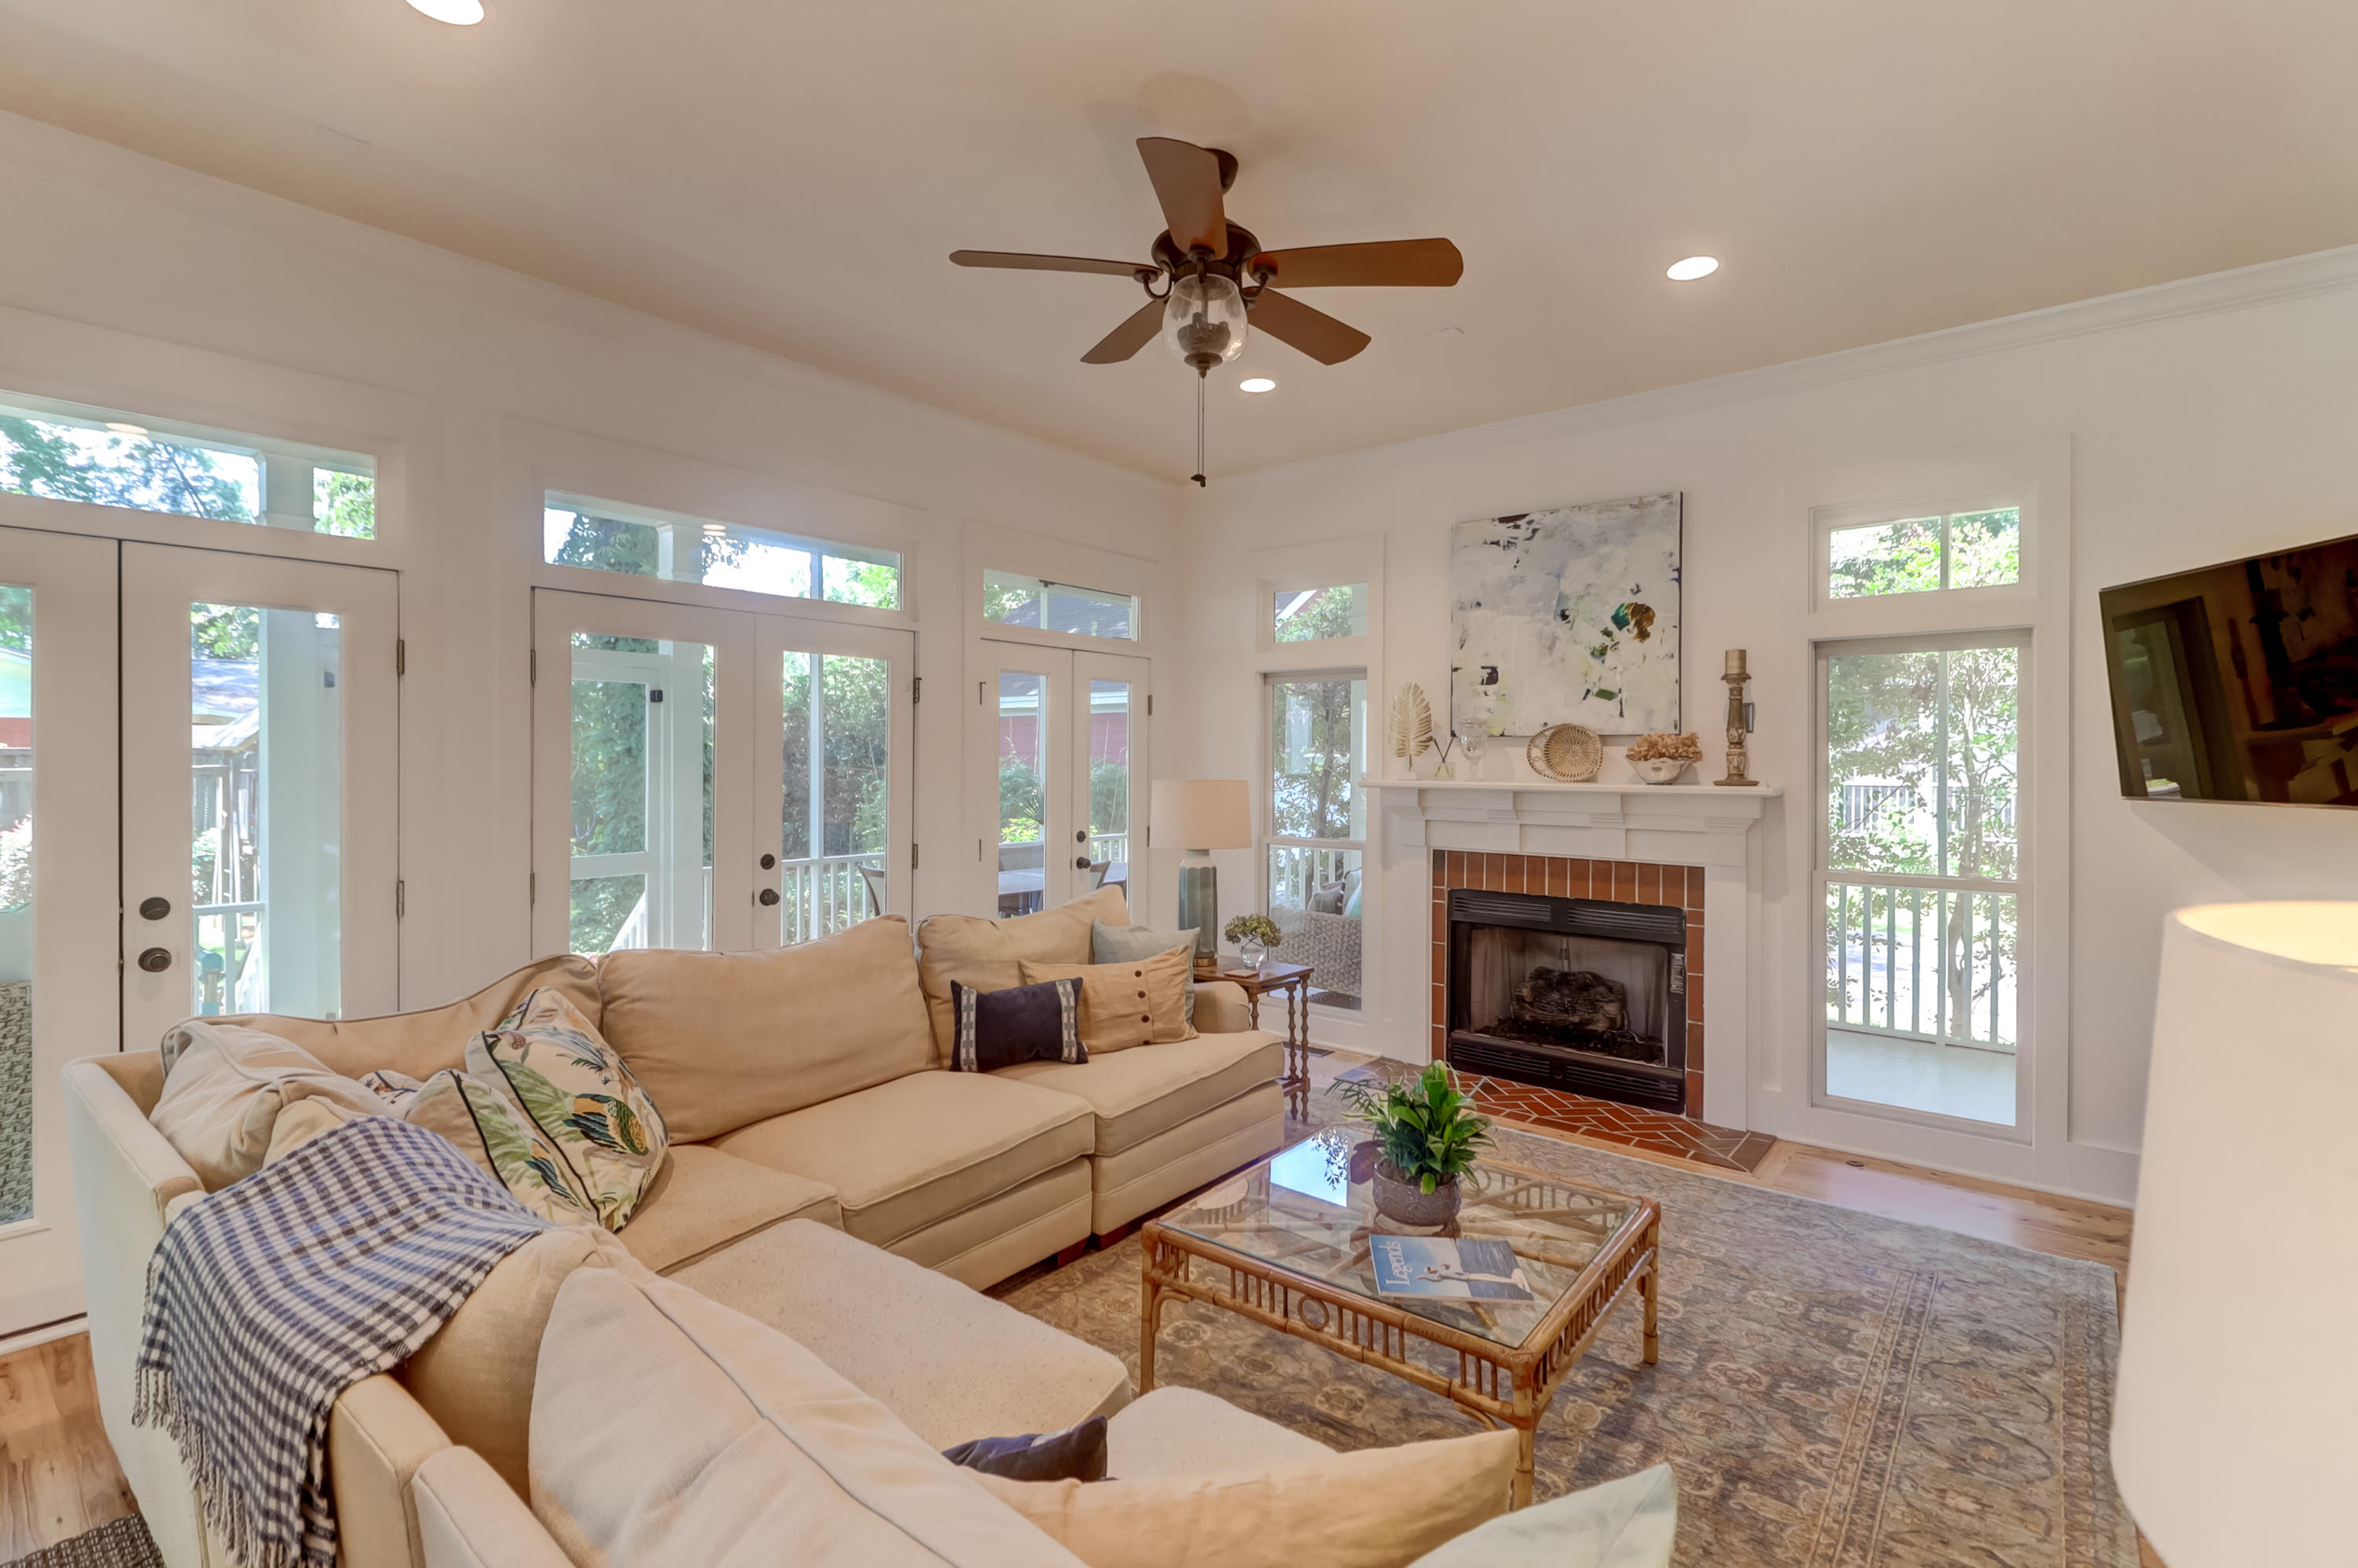 The Villages In St Johns Woods Homes For Sale - 5056 Coral Reef Dr, Johns Island, SC - 12